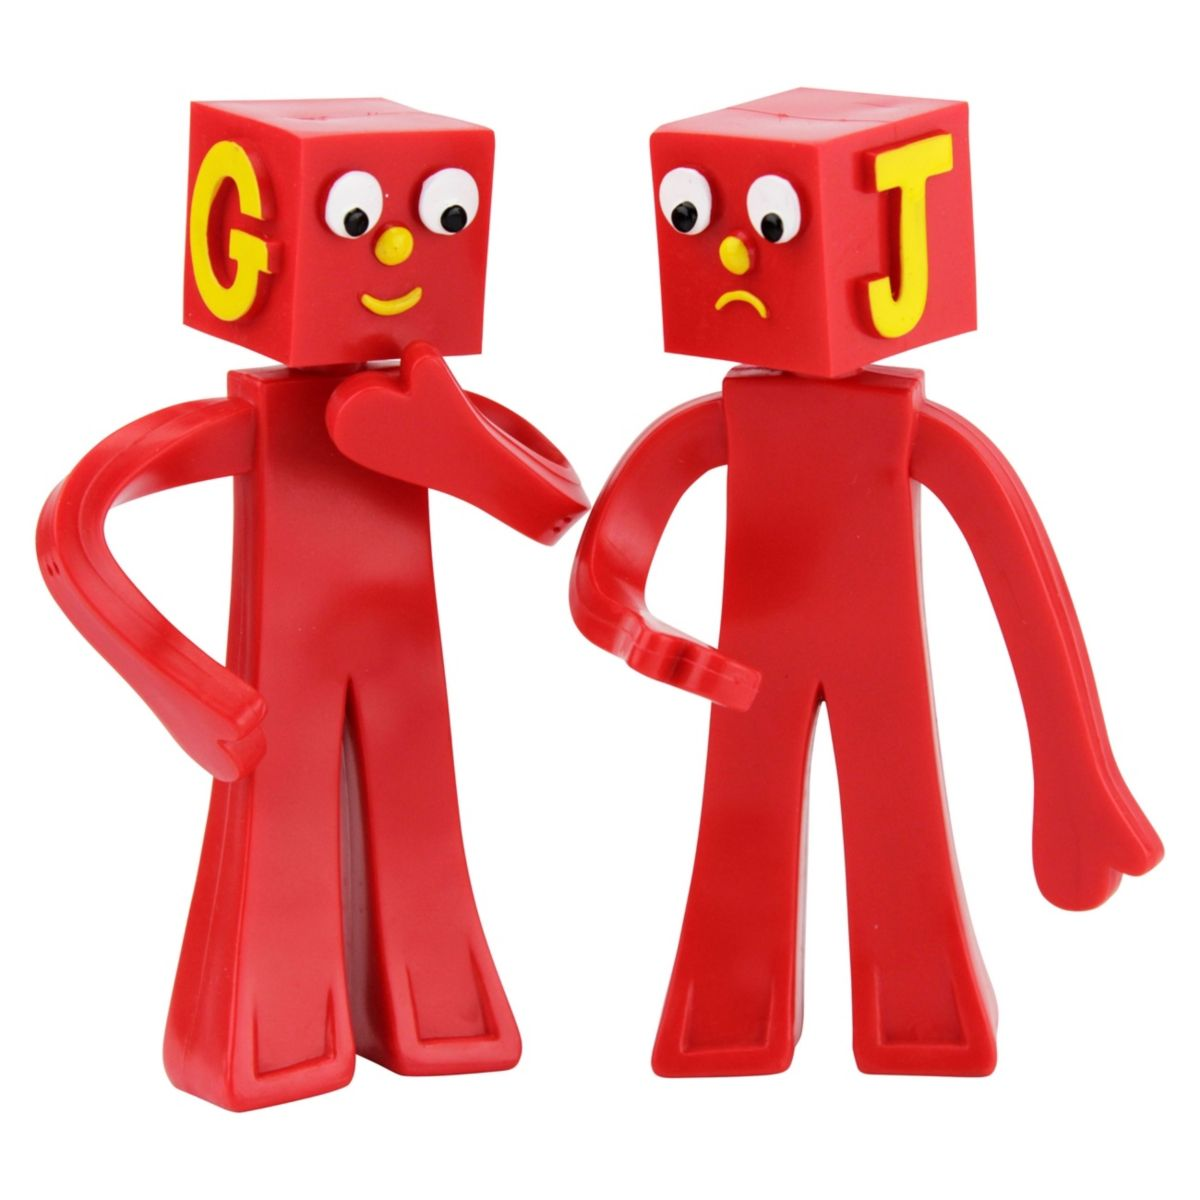 Gumby Nj Croce The Blockheads 5 In 2020 Gumby And Pokey Bendable Vintage Toys